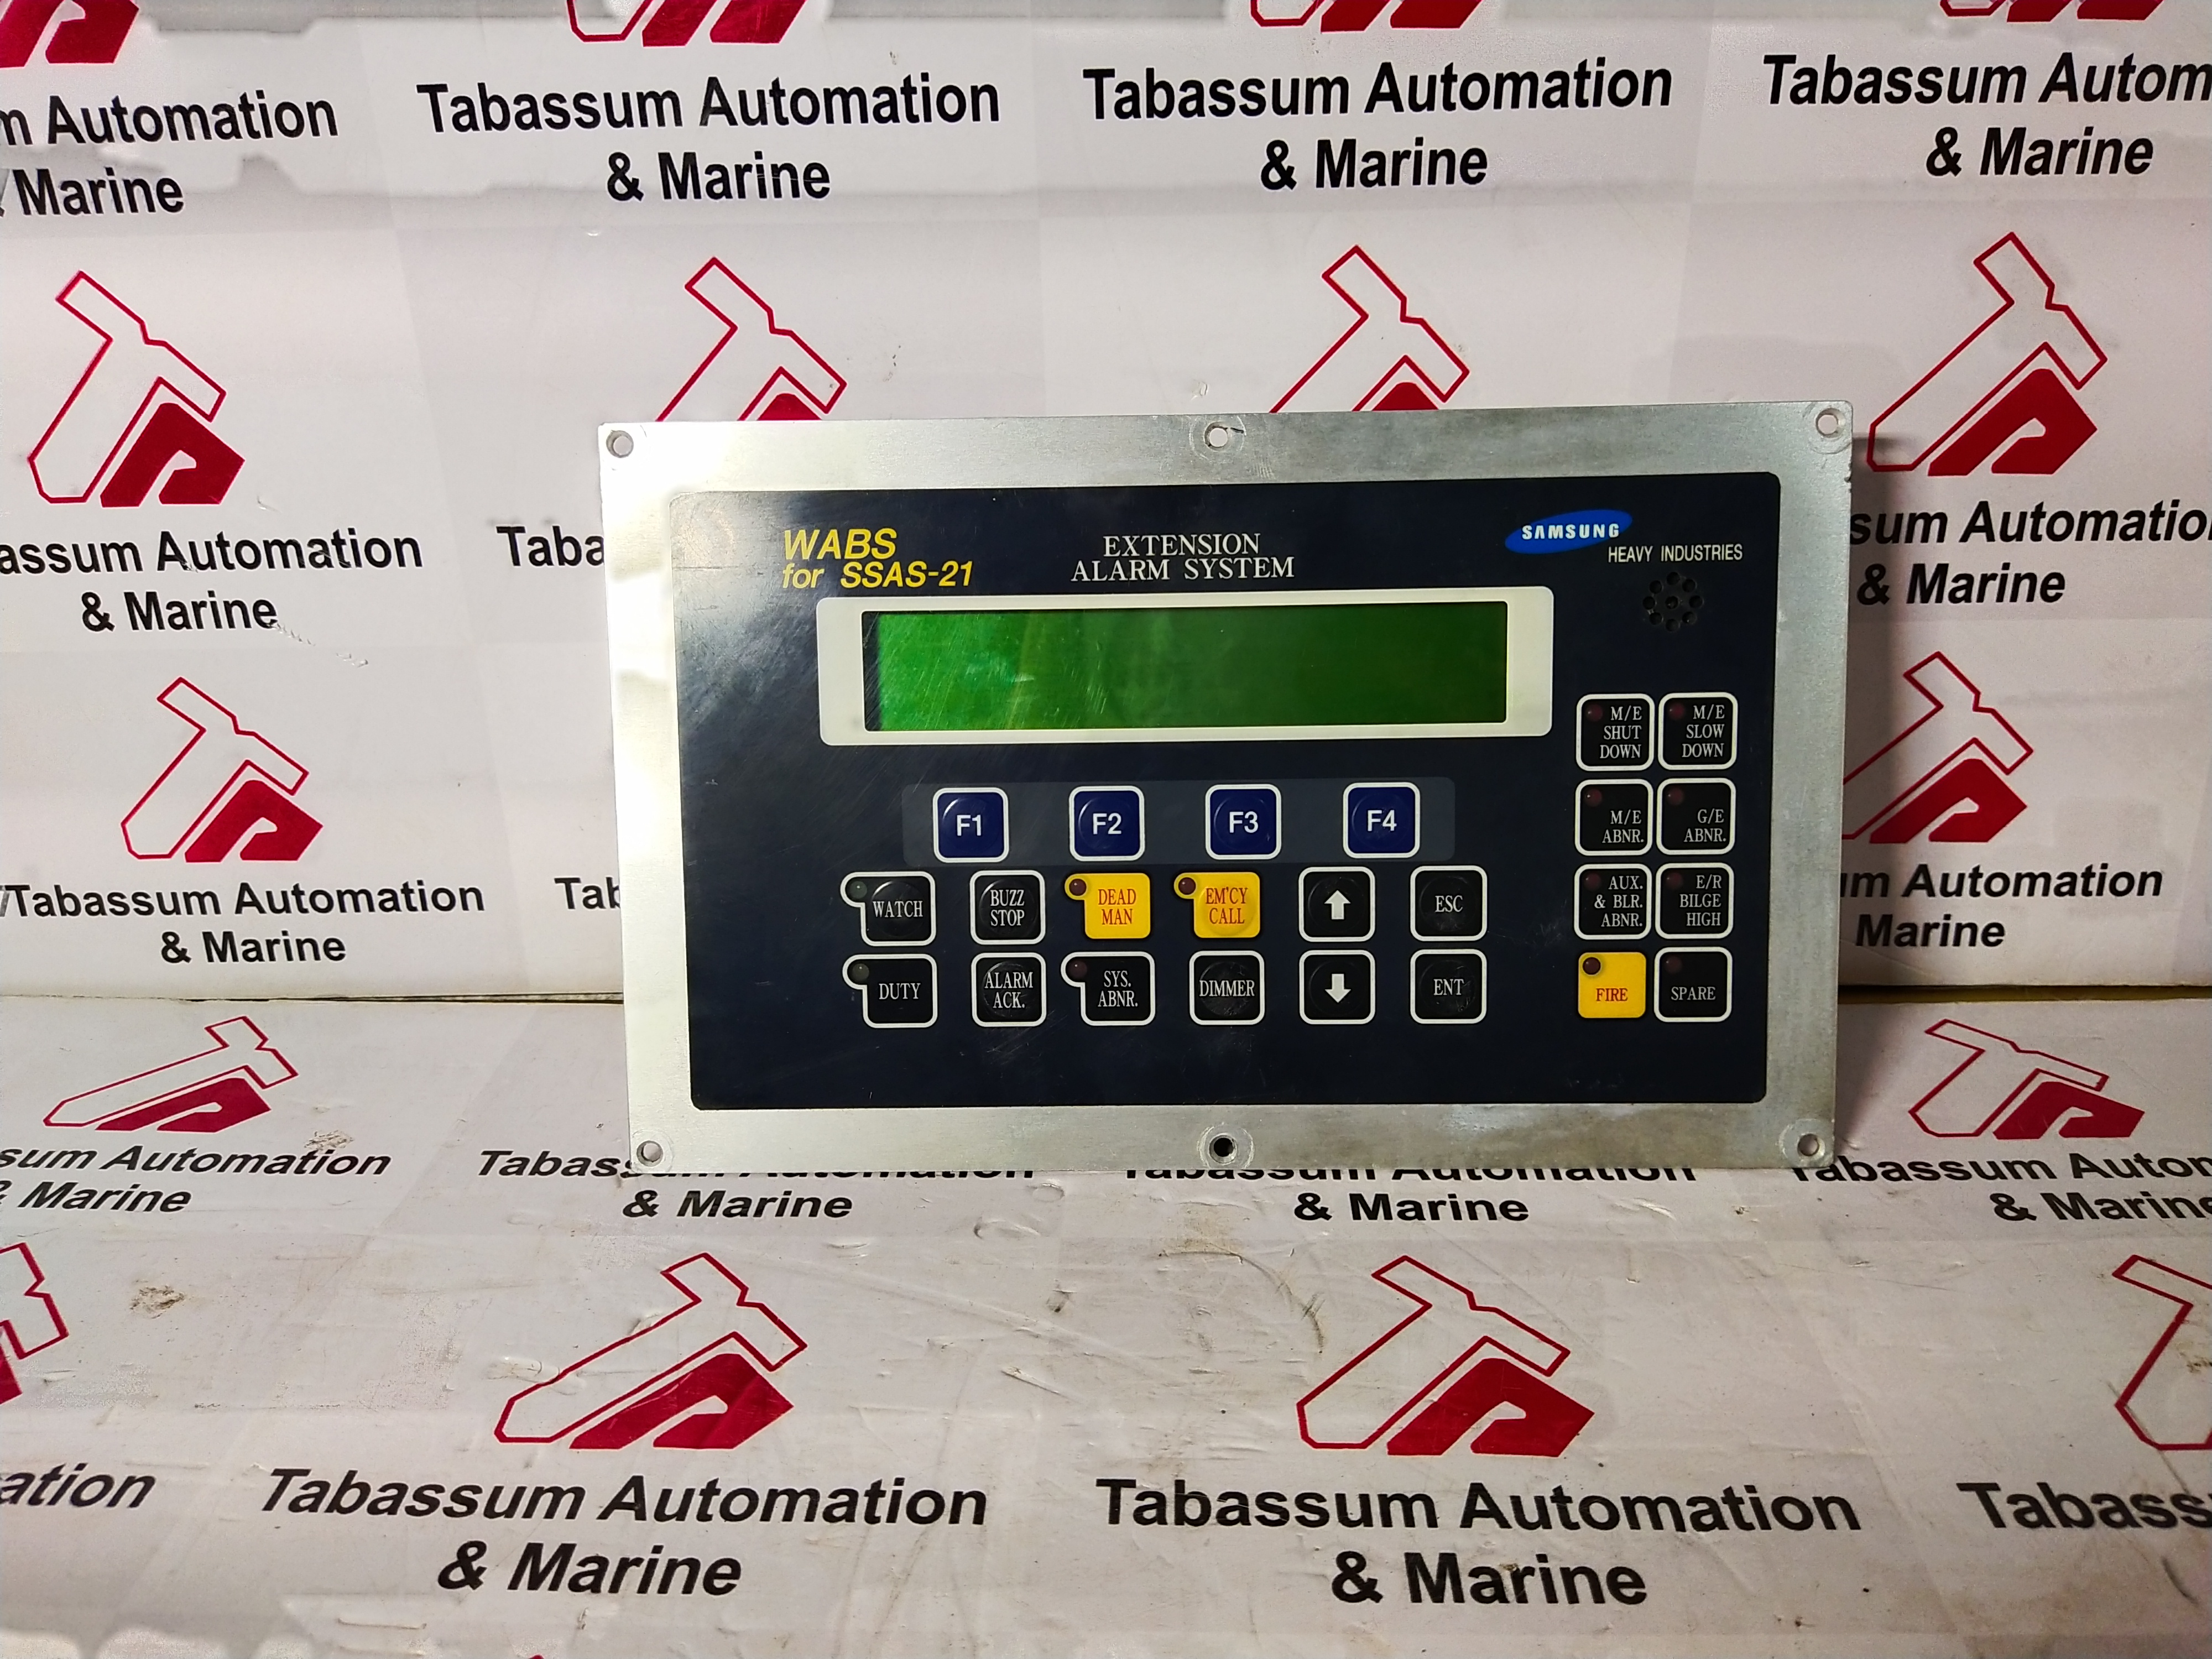 WABS FOR SSAS-21 SAMSUNG EXTENSION ALARM SYSTEM